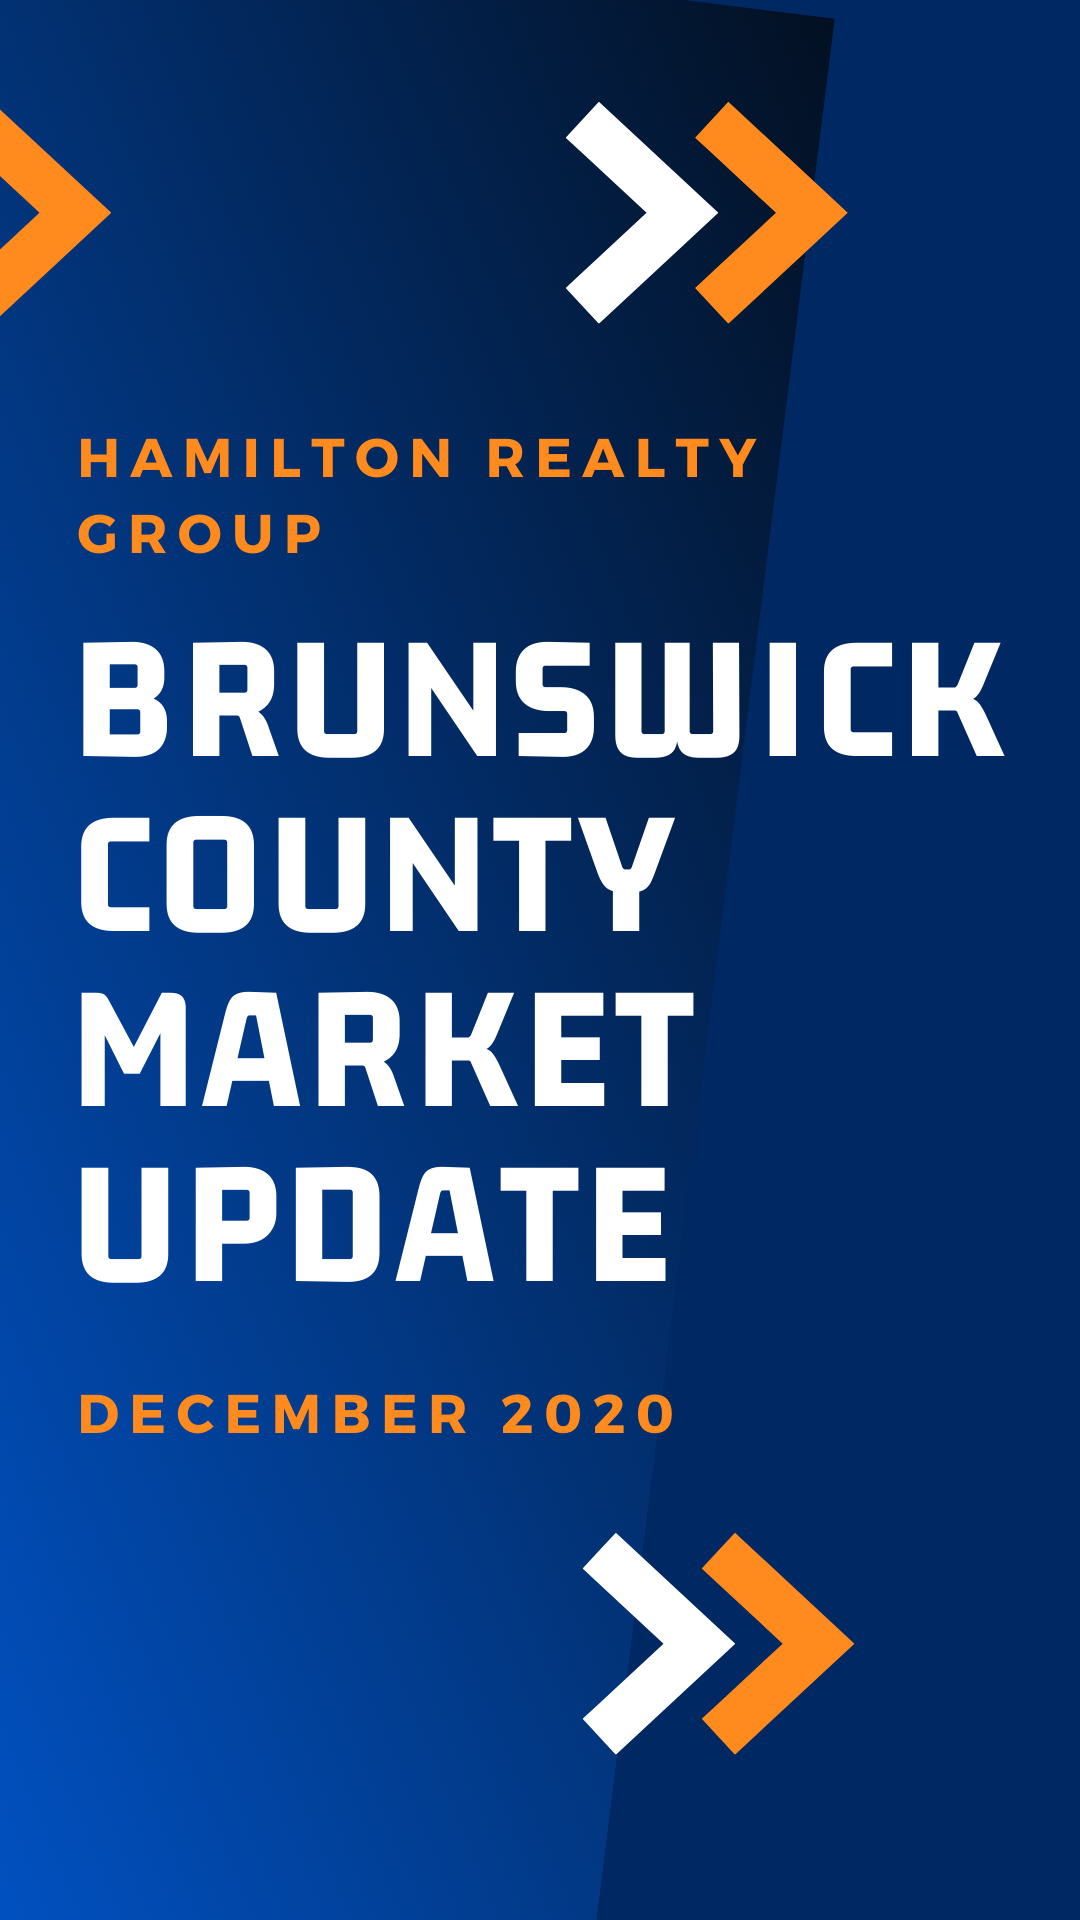 DECEMBER 2020: Brunswick County Market Update